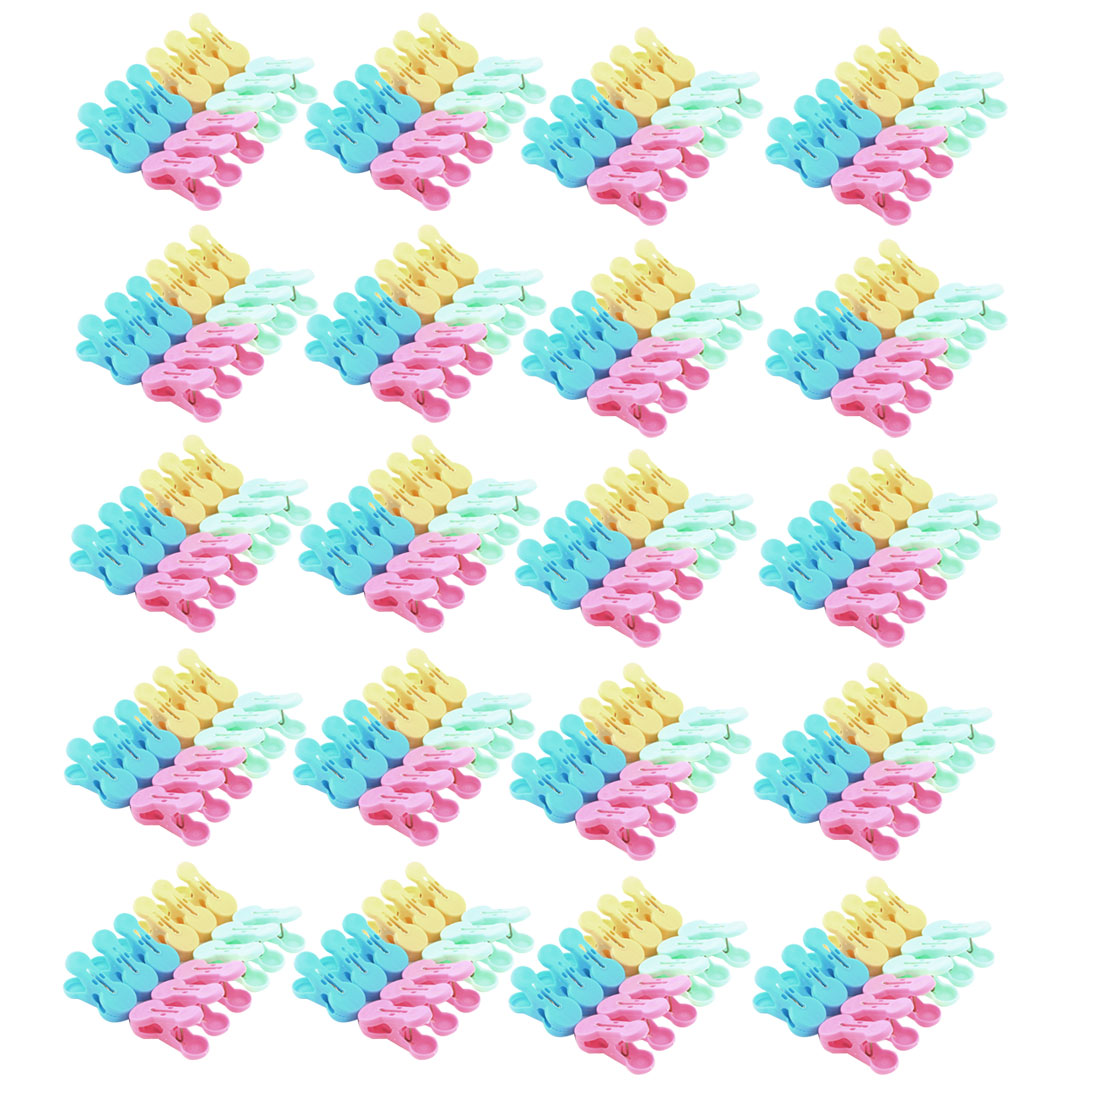 Unique Bargains Household Plastic Socks Towel Bag Clothing Clothes Clips Clamp Clothespin 240pcs